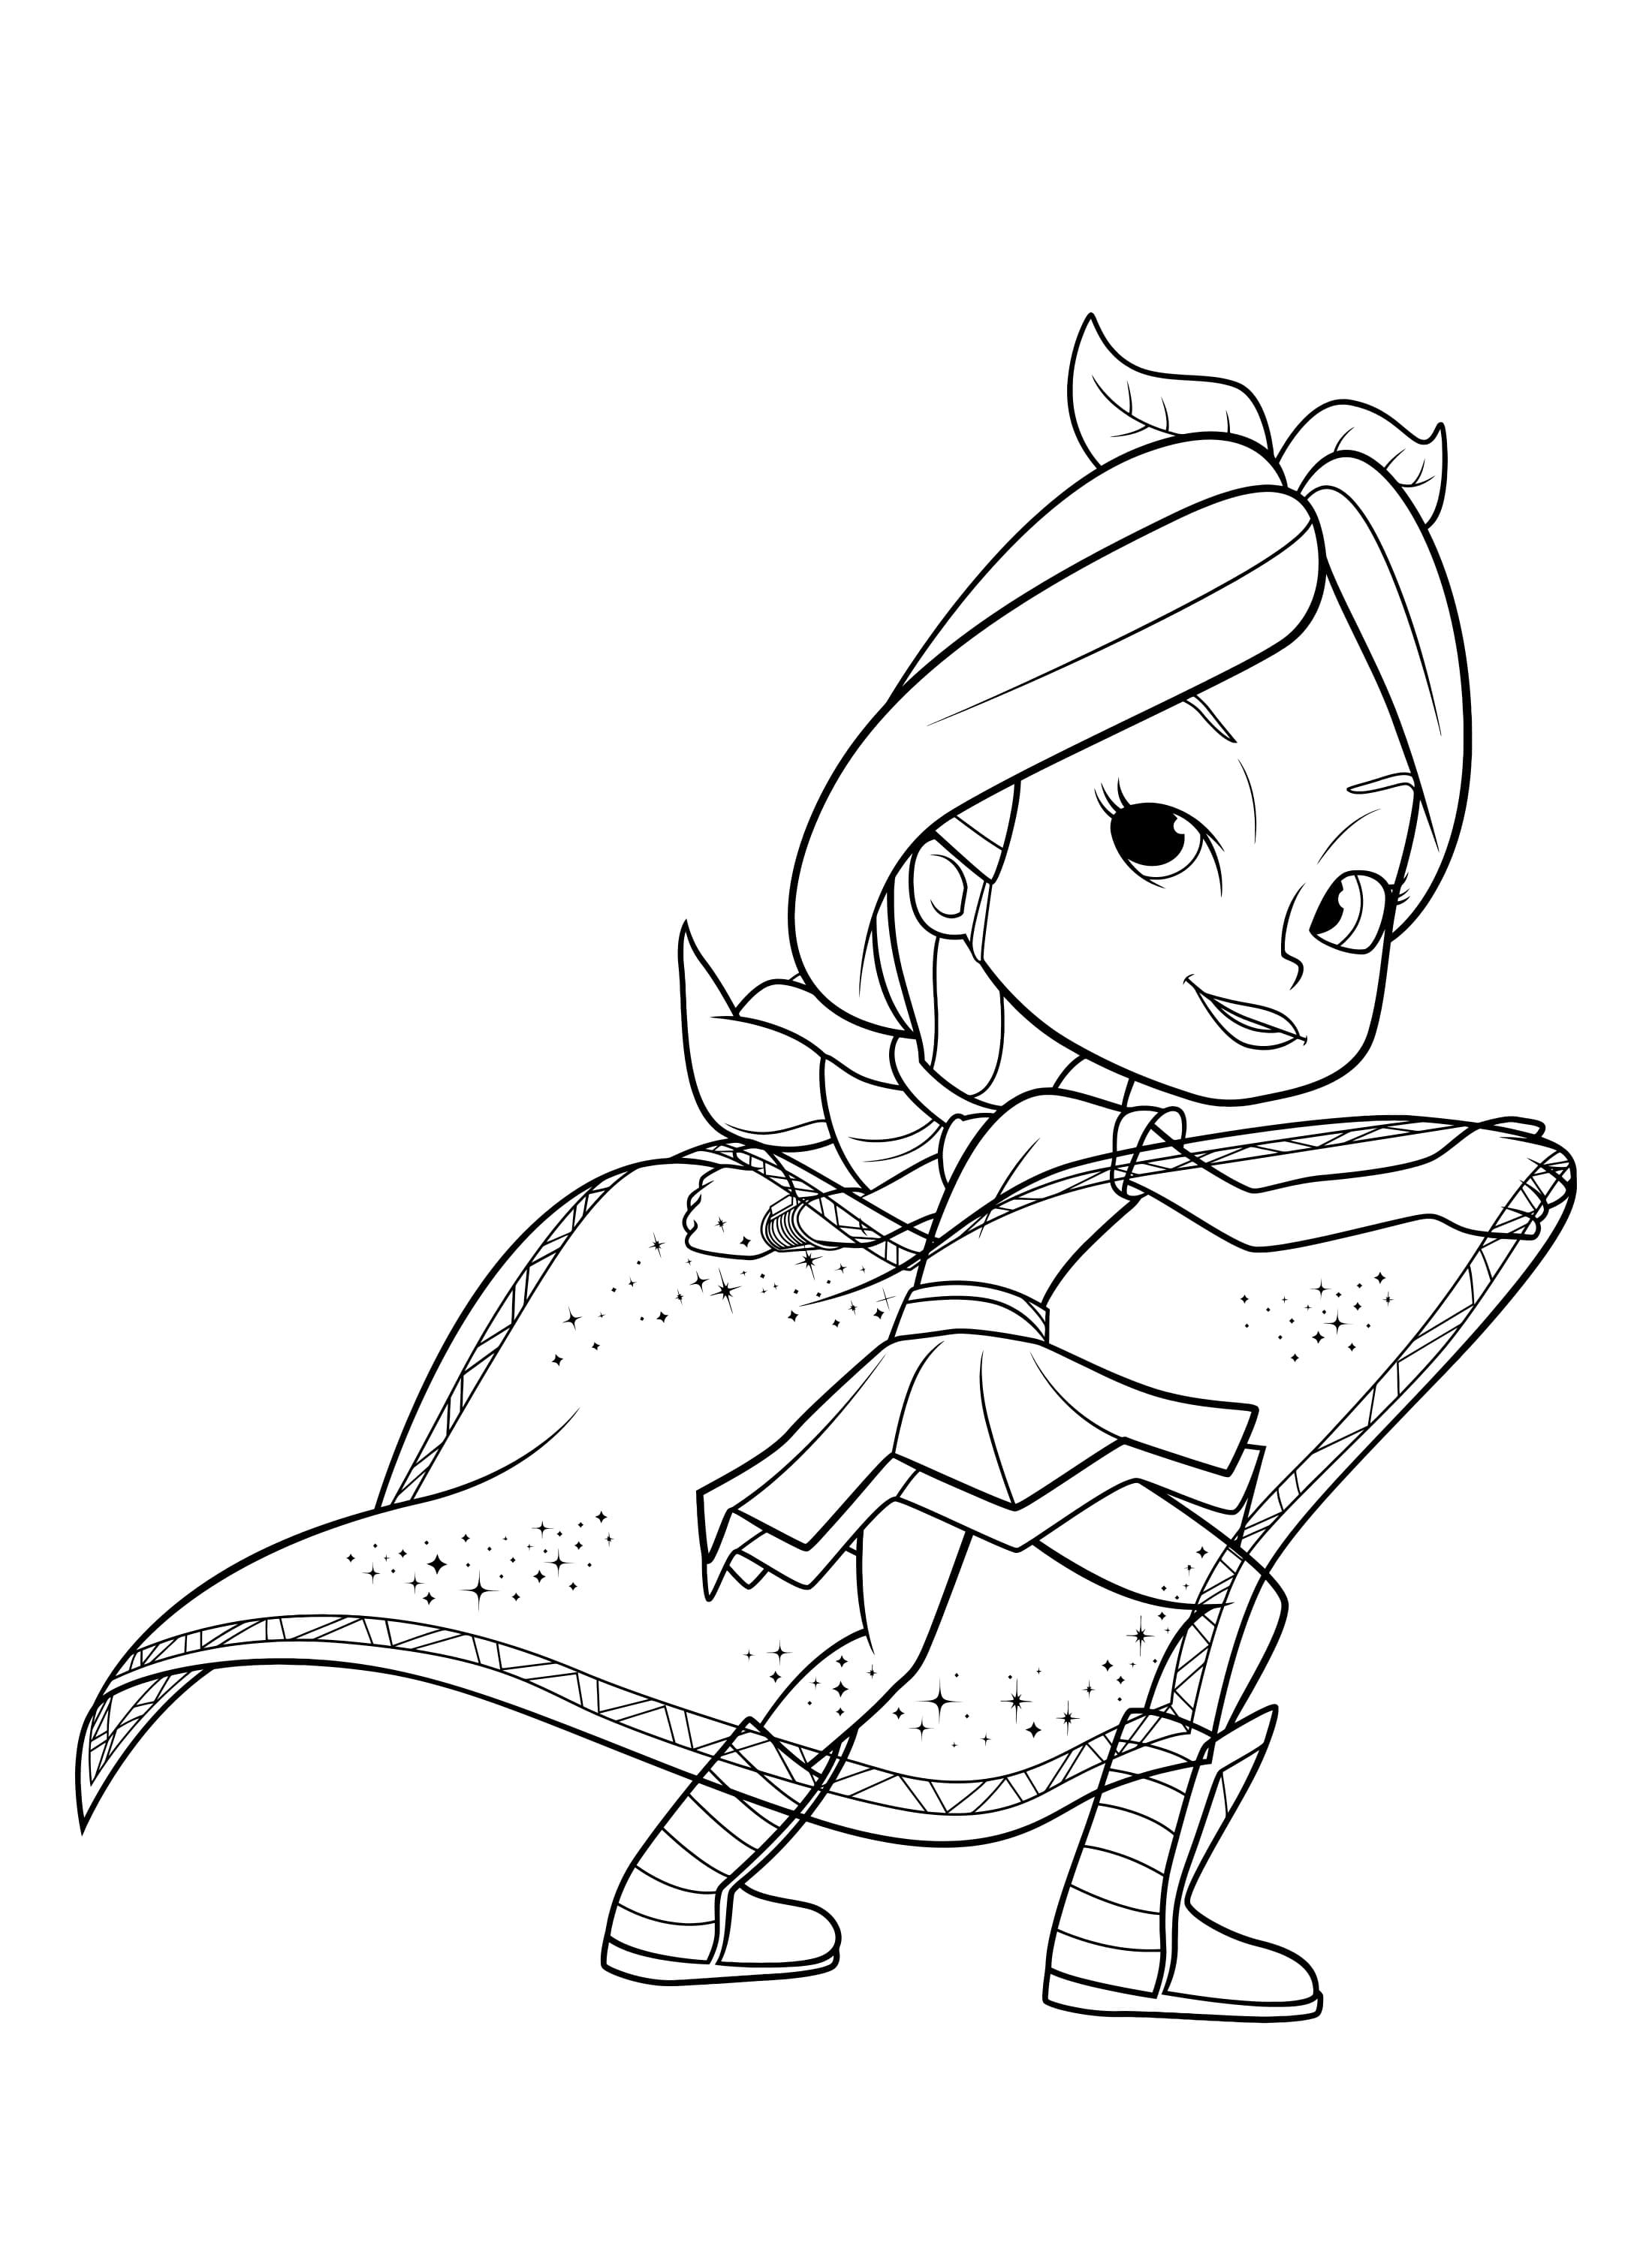 Rainbow rangers coloring pages